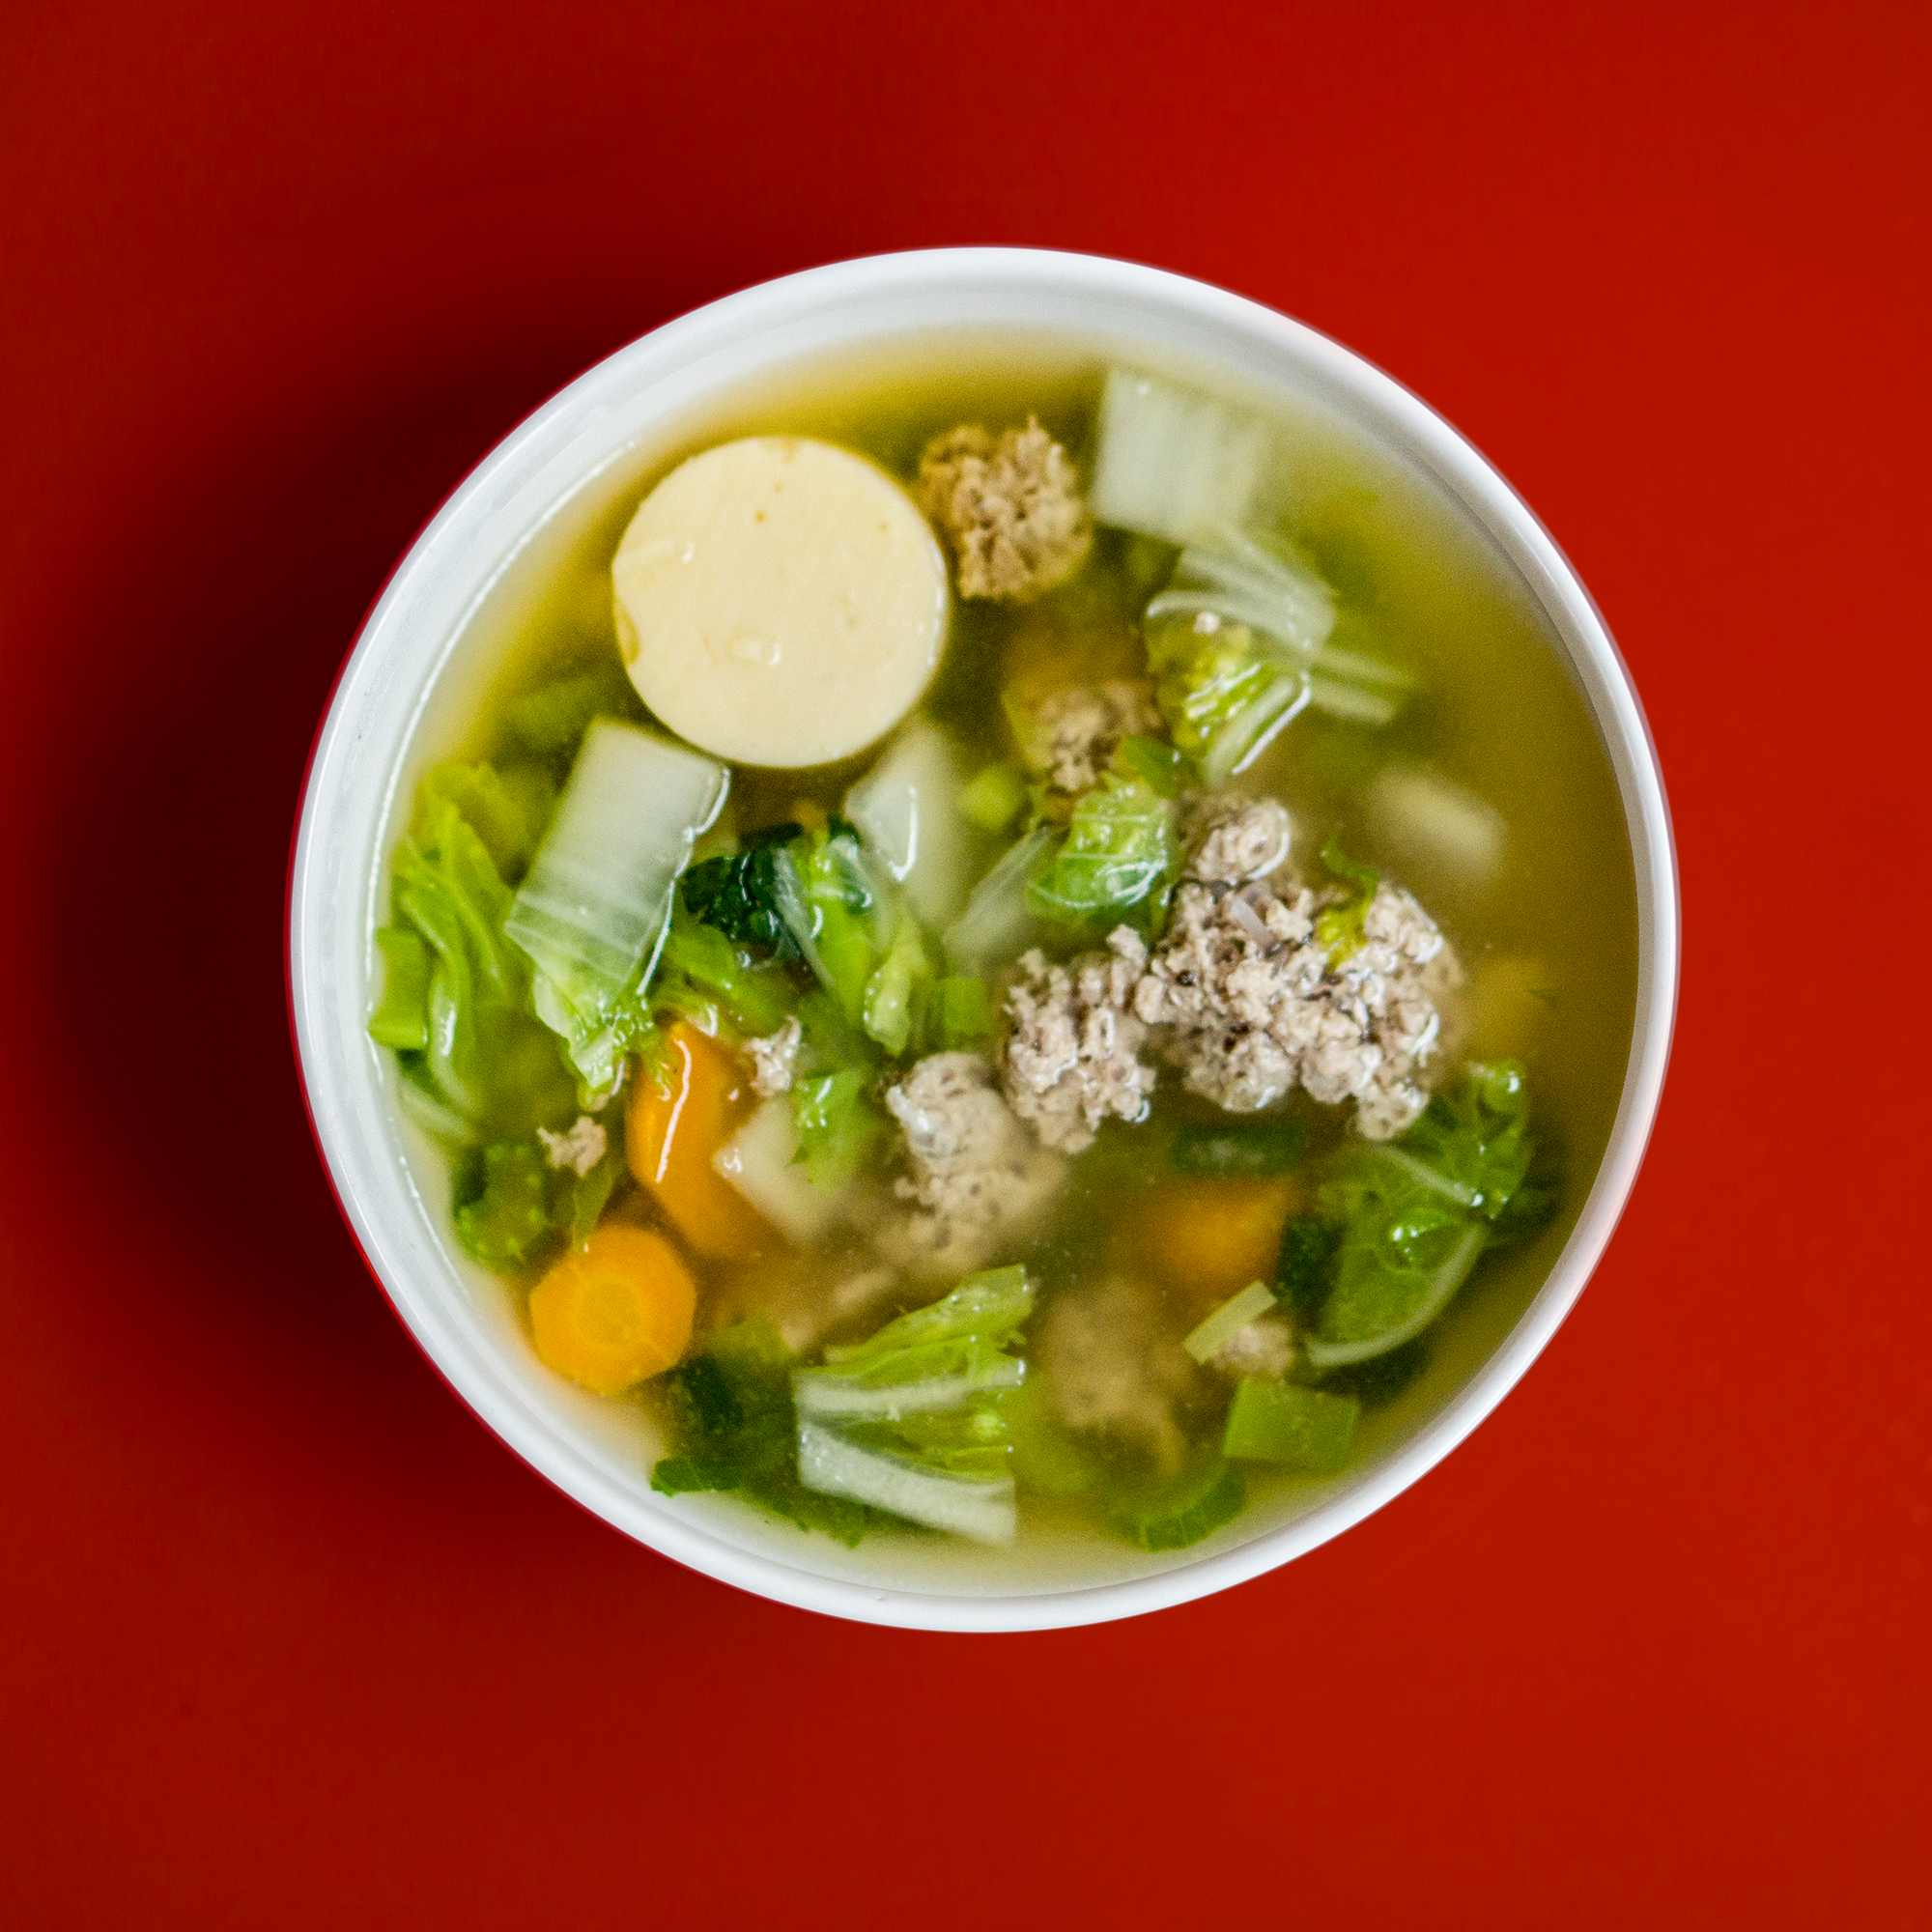 Photo by Cook Eat from Pexels https://www.pexels.com/photo/stew-with-meat-and-vegetables-placed-in-white-ceramic-bowl-772518/